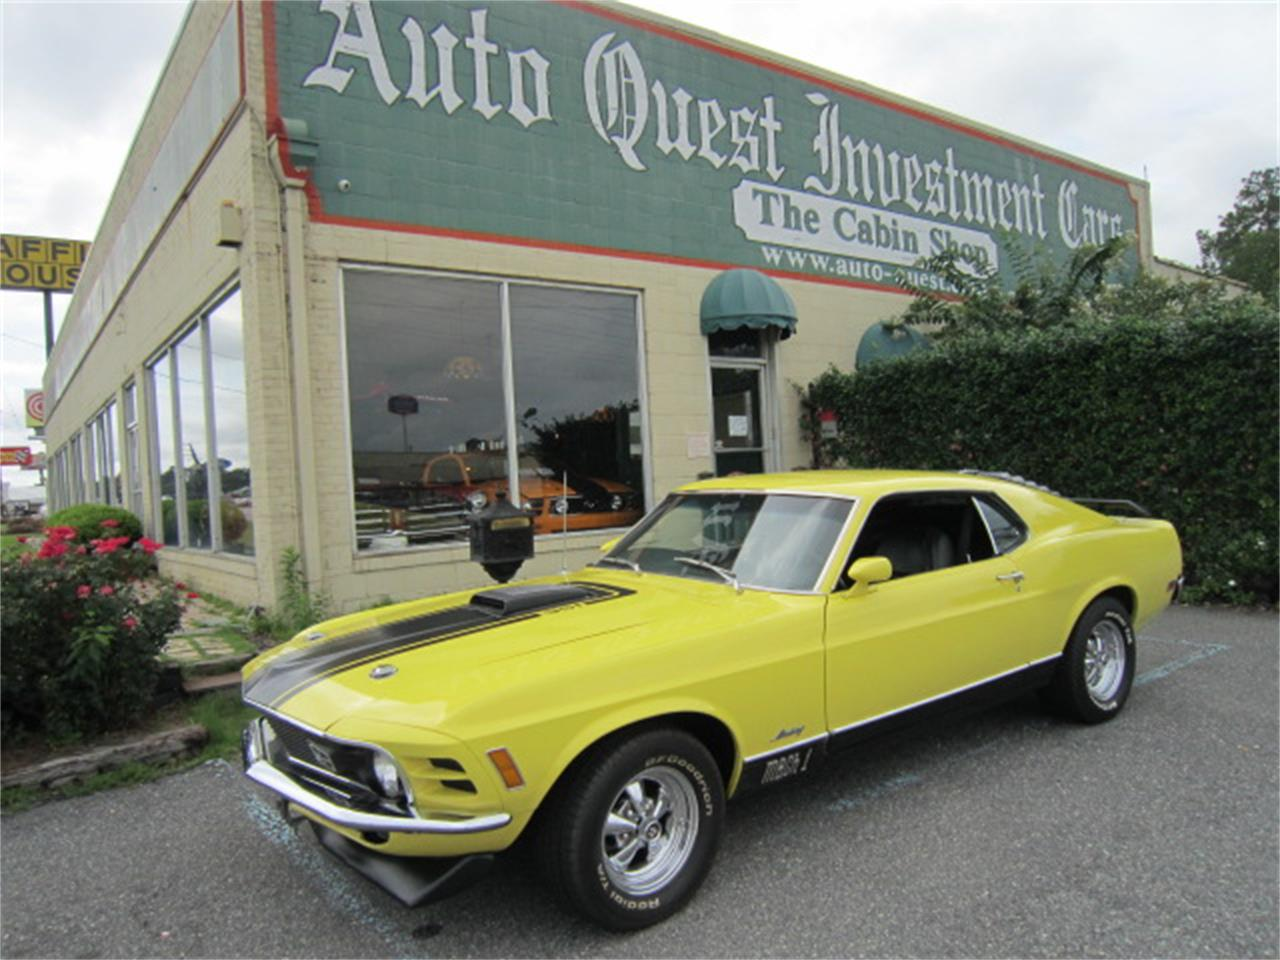 Large Picture of Classic '70 Ford Mustang Mach 1 located in Tifton Georgia - $47,900.00 - MR6C